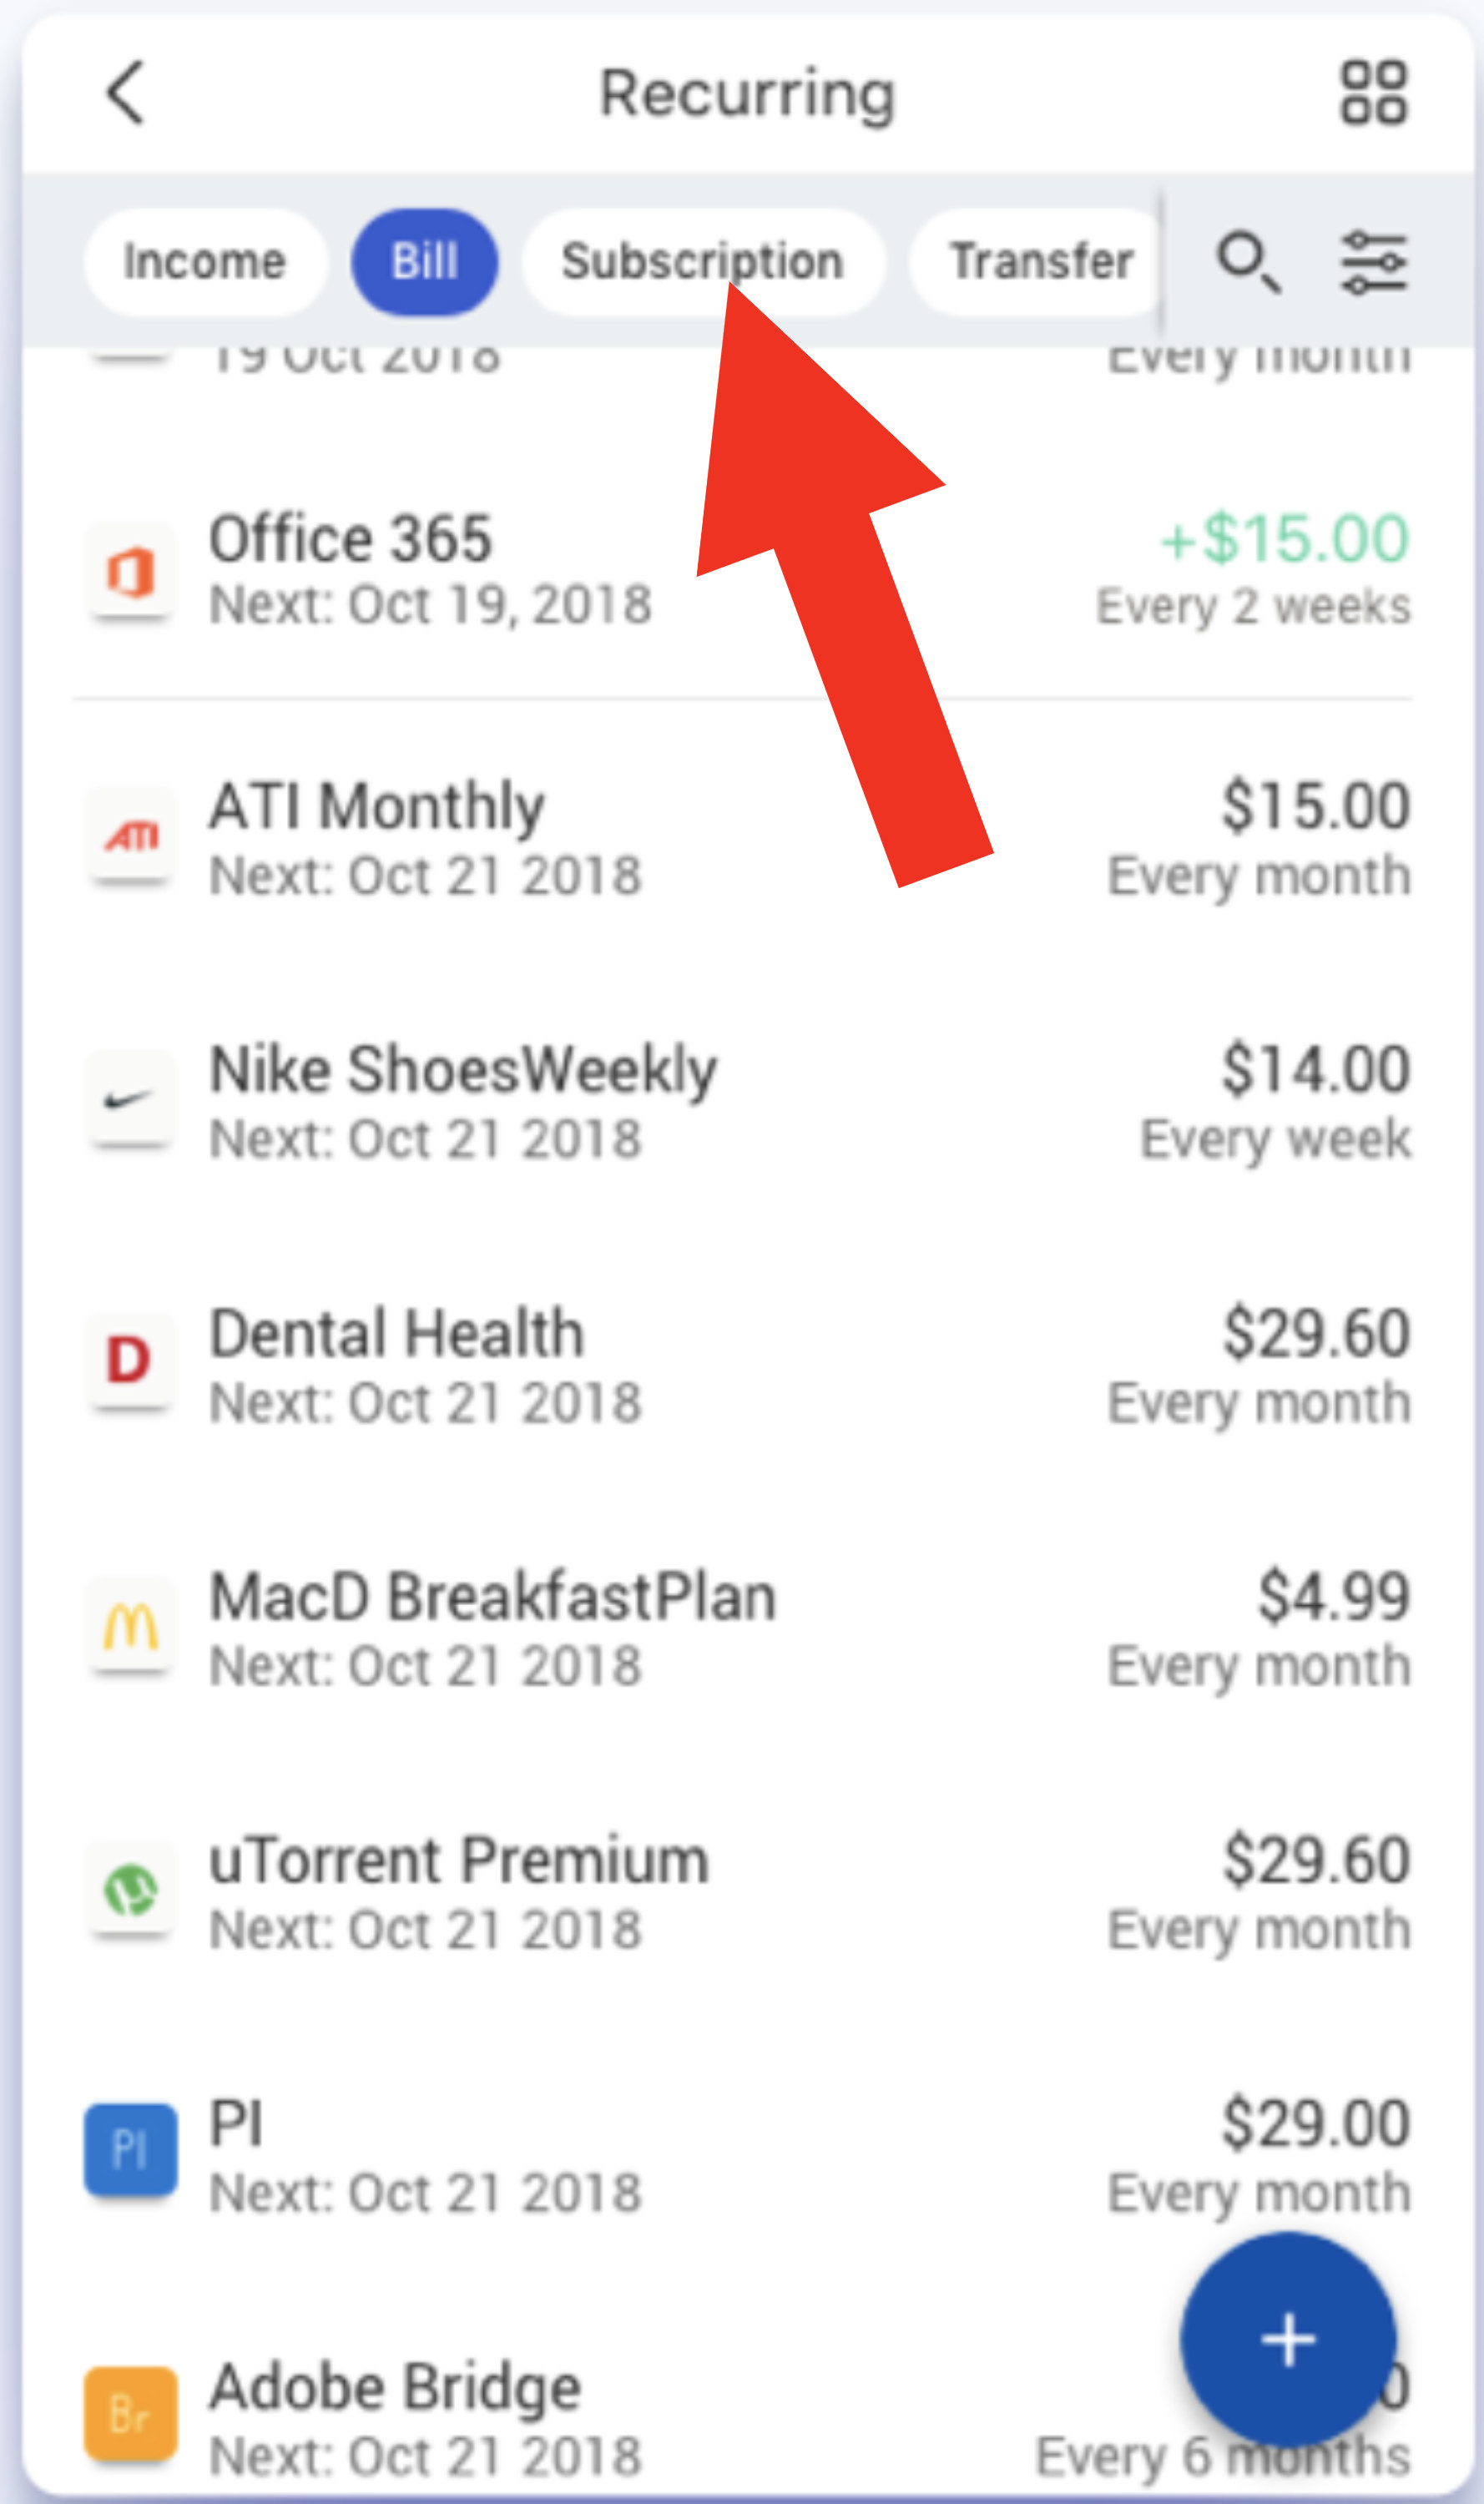 Screenshot of recurring bills and subscriptions in the Simplifi app